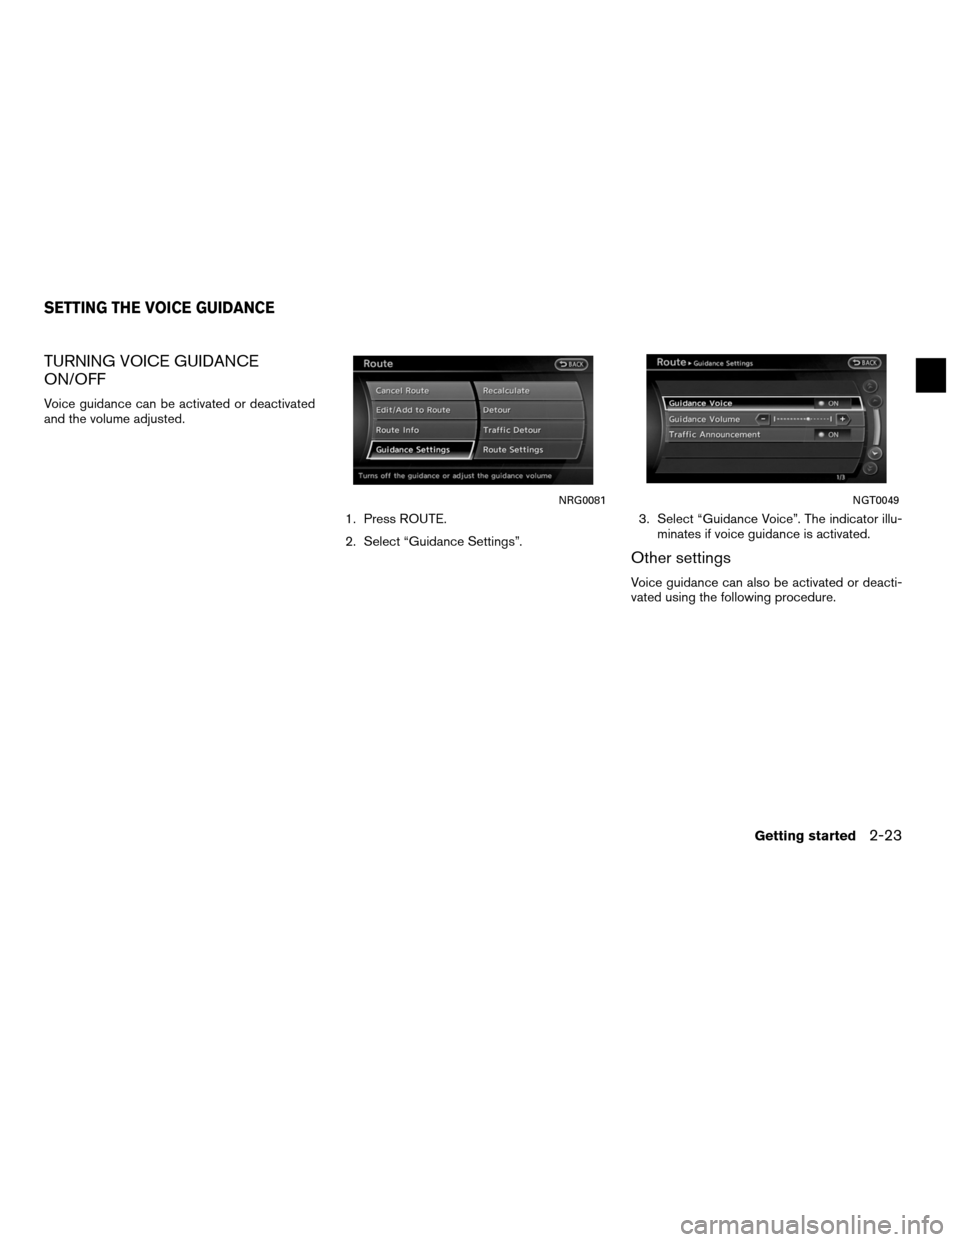 NISSAN ALTIMA COUPE 2011 D32 / 4.G Navigation Manual, Page 31